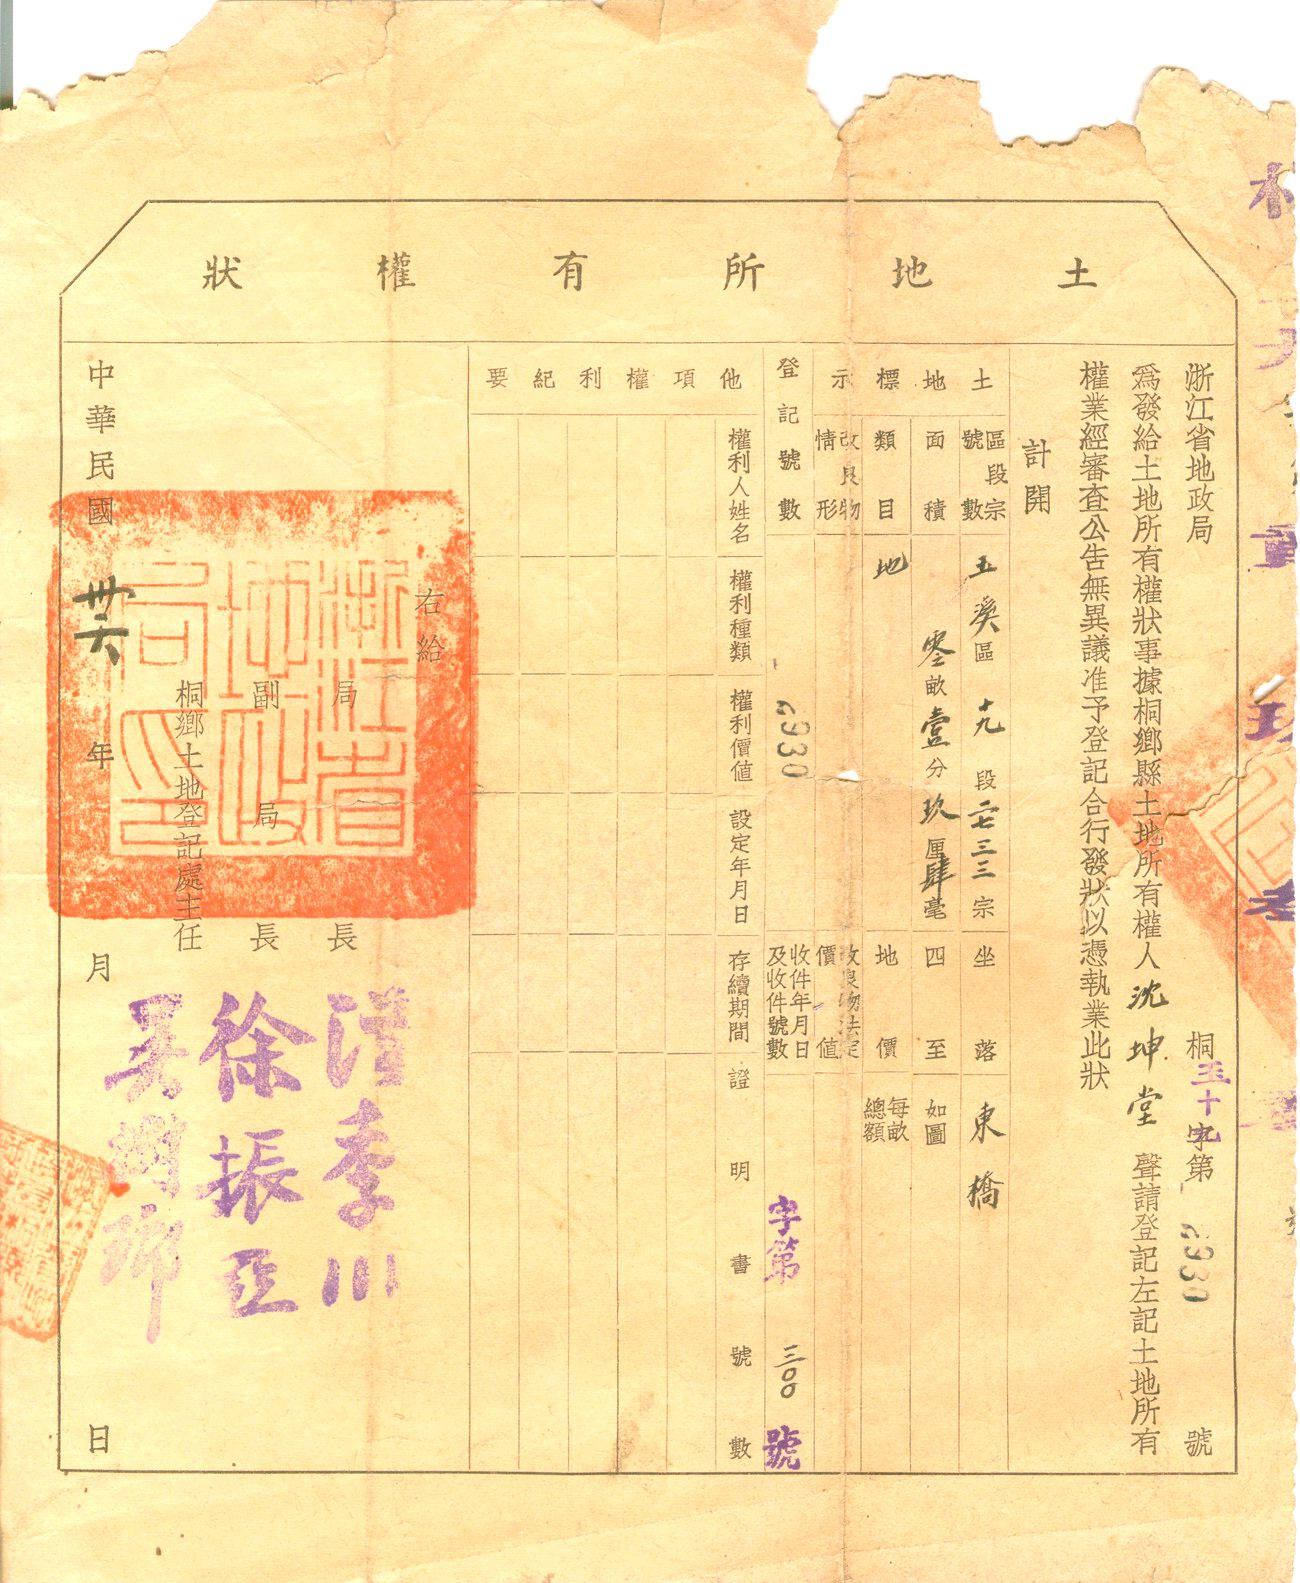 D4062, Land Deed Certificate of Zhejiang Province, China 1947